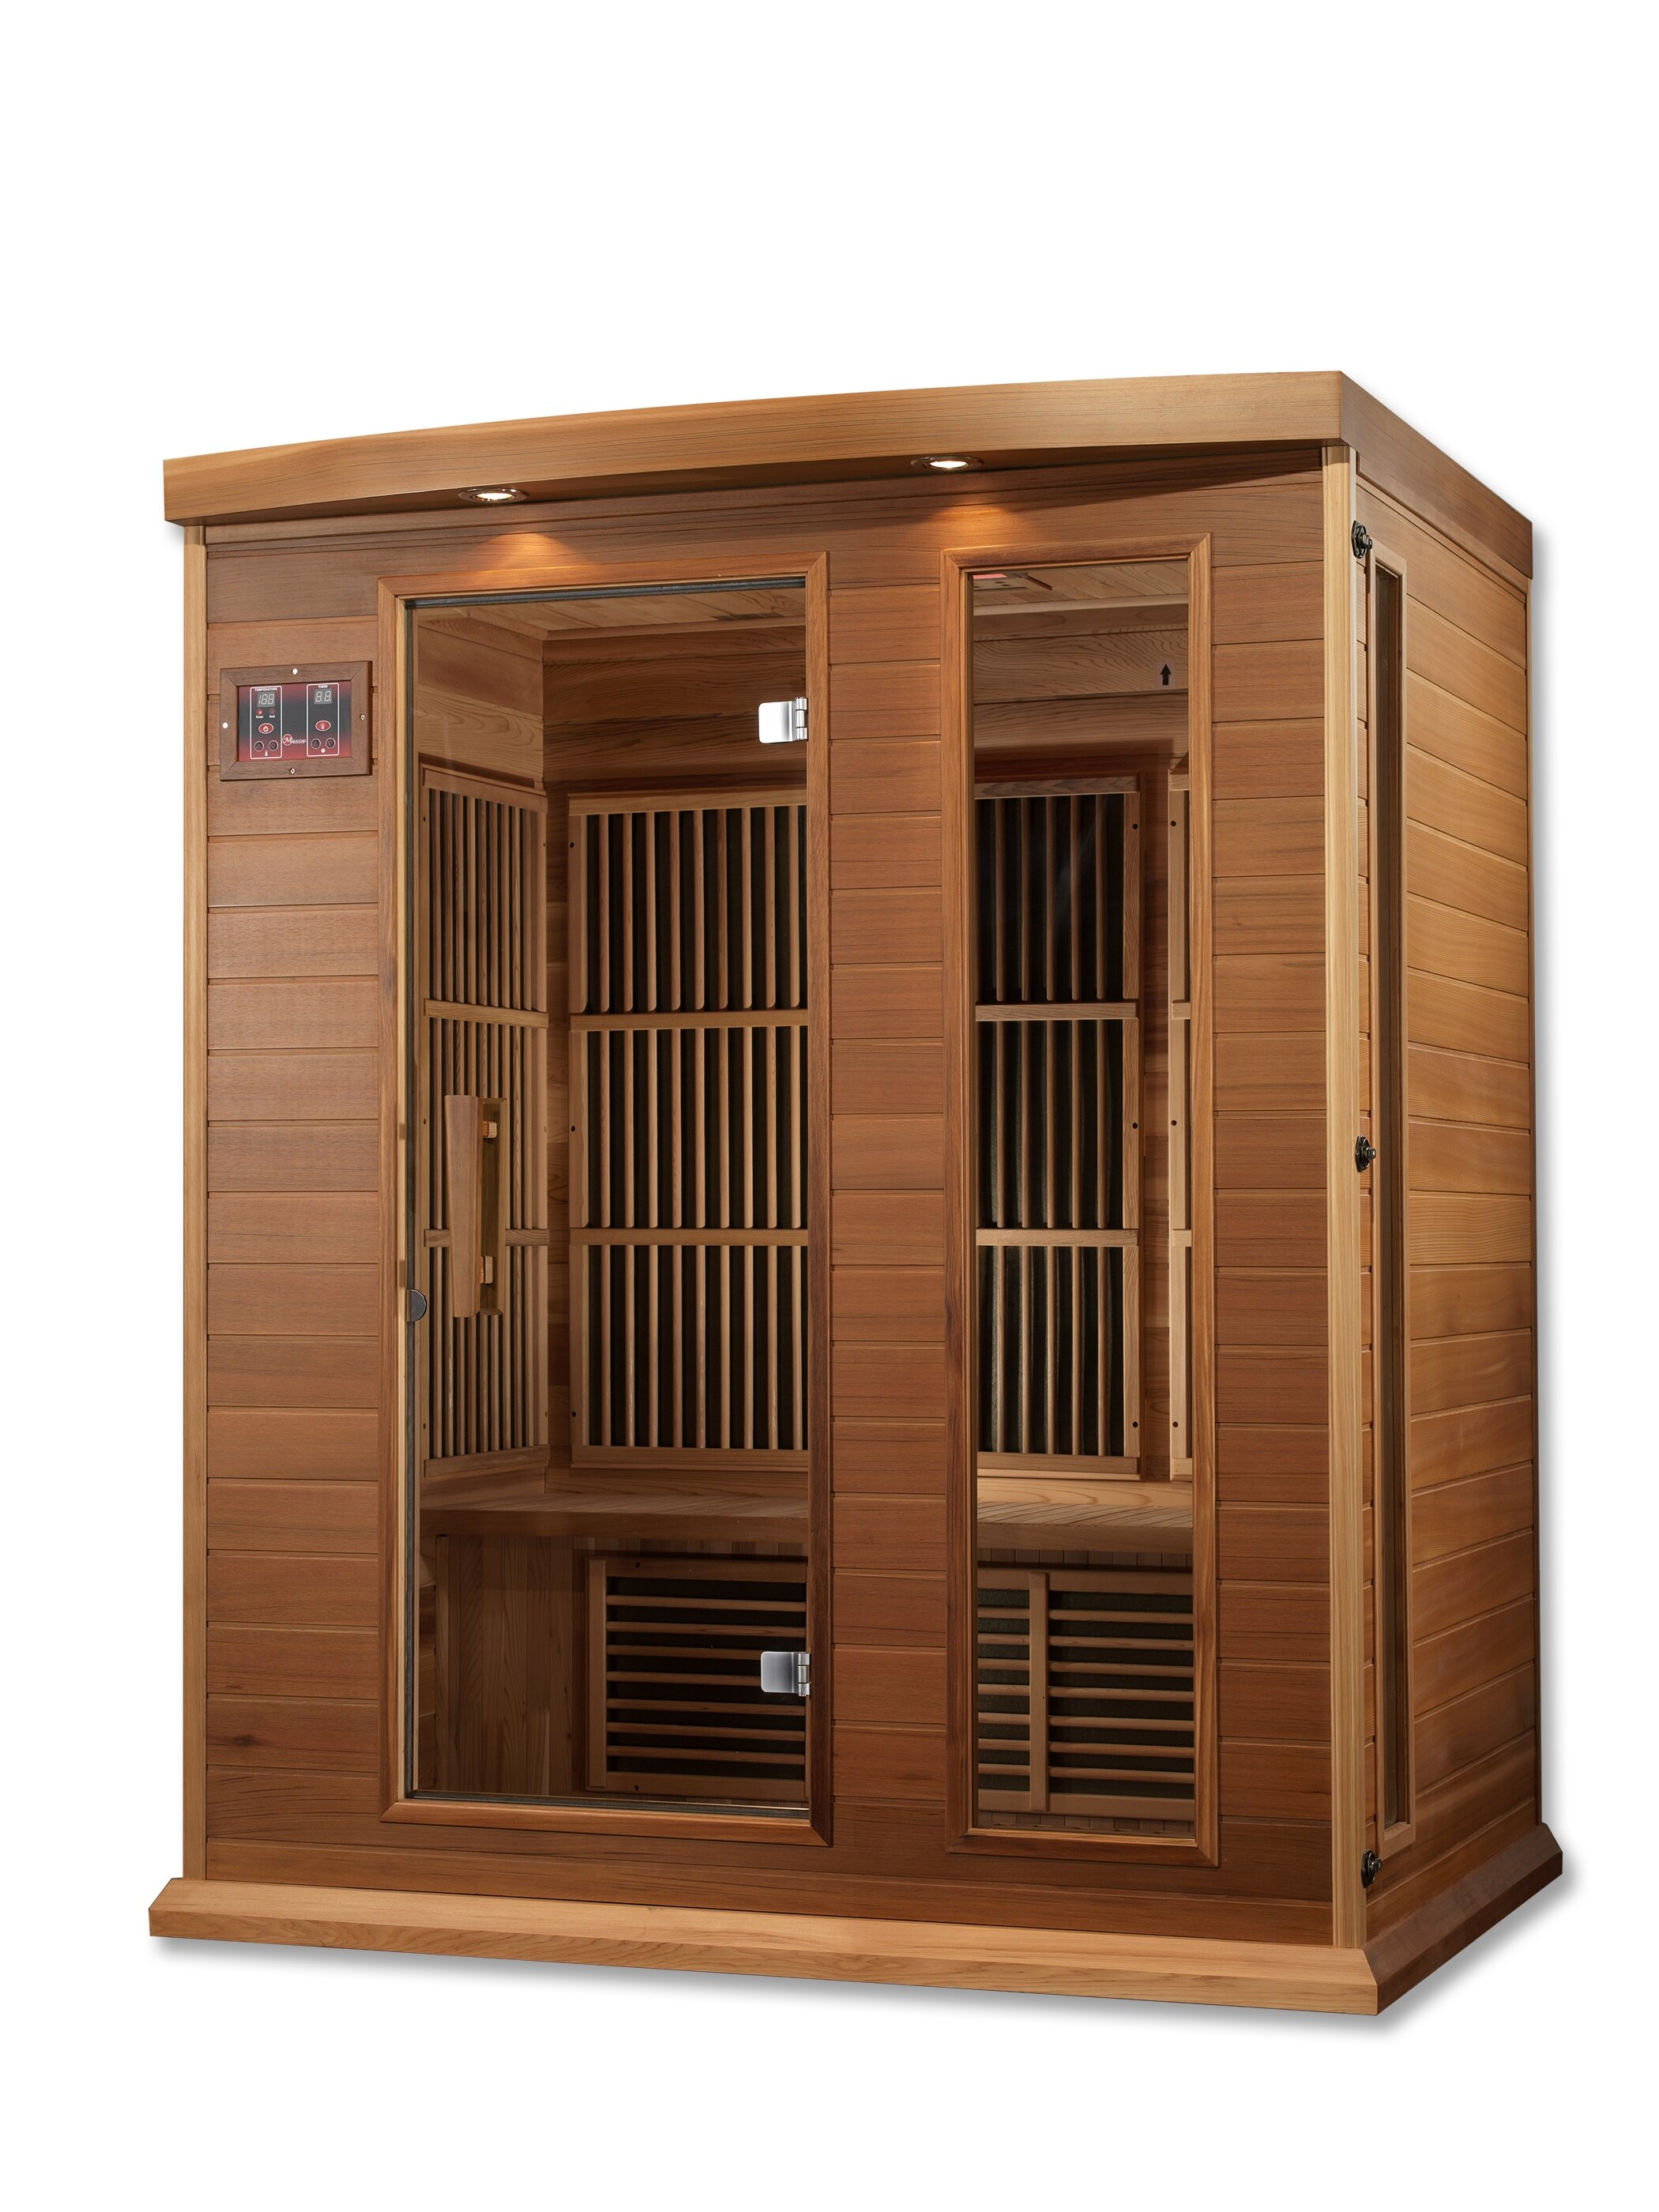 Dynamic Infrared Luxury Series 3 Person FAR Infrared Sauna & Reviews on grocery store lighting ideas, terrace lighting ideas, room lighting ideas, clubhouse lighting ideas, balcony lighting ideas, yoga studio lighting ideas, custom home lighting ideas, boat lift lighting ideas, bath lighting ideas, spa lighting ideas, bbq lighting ideas, elegant bathroom lighting ideas, police lighting ideas, wood deck lighting ideas, security lighting ideas, gym lighting ideas, solarium lighting ideas, sauna flooring, roof deck lighting ideas, beachfront lighting ideas,